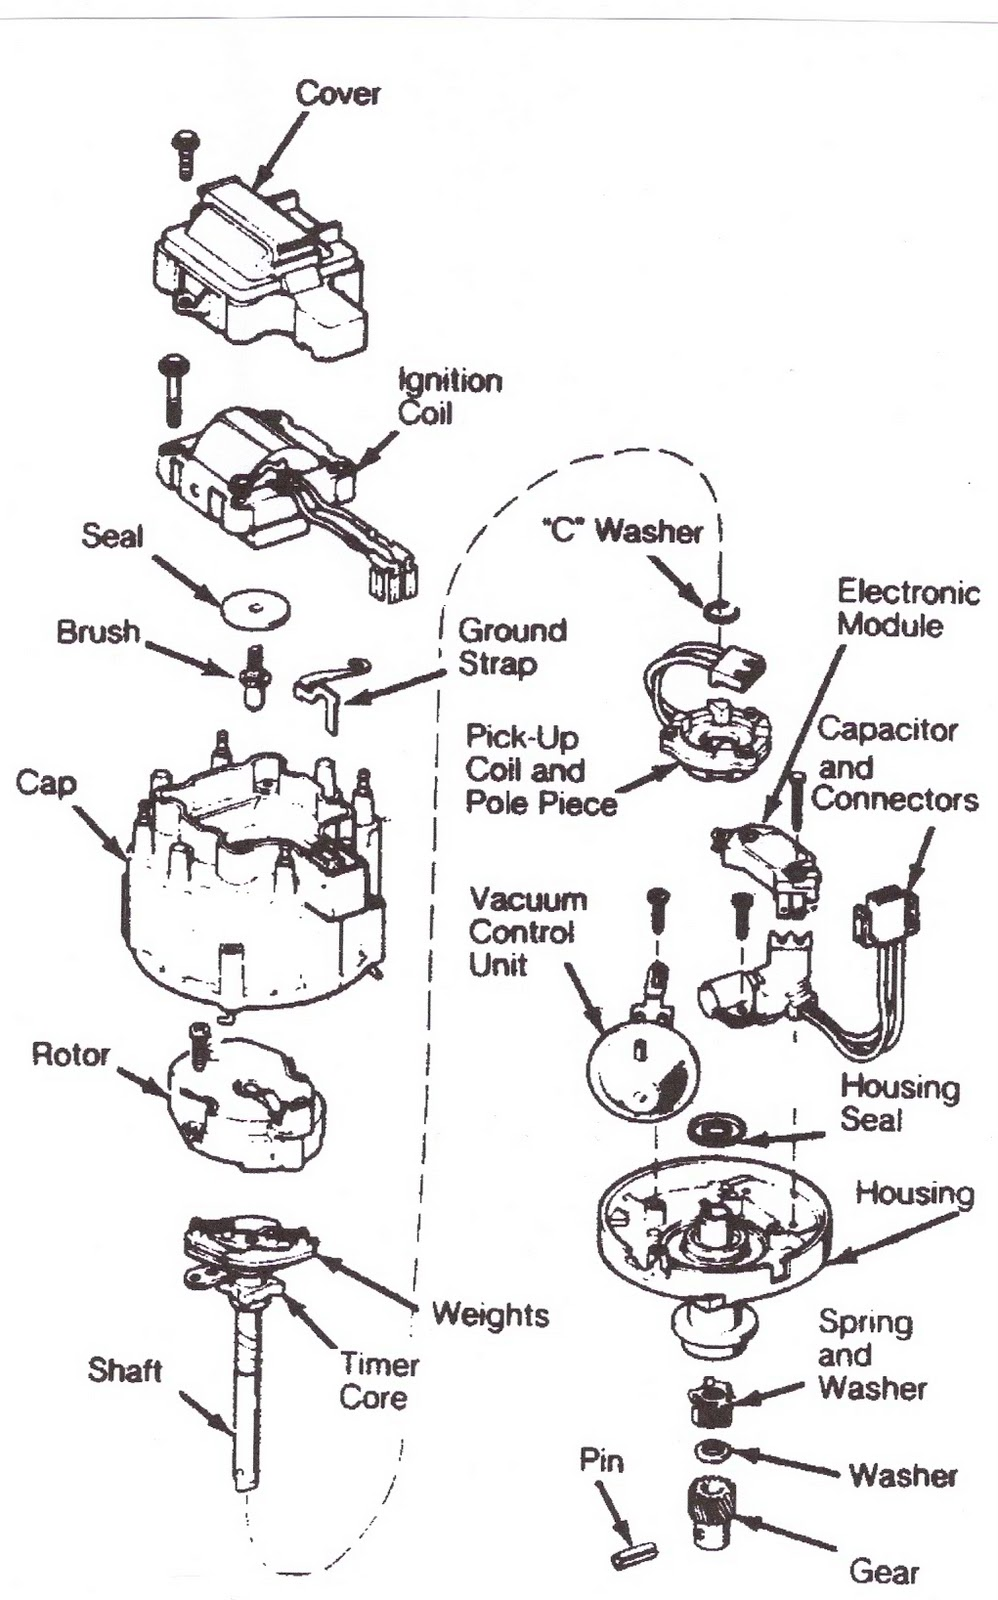 Troubleshooting Gms Hei Ignition System on Ford Distributor Parts Diagram